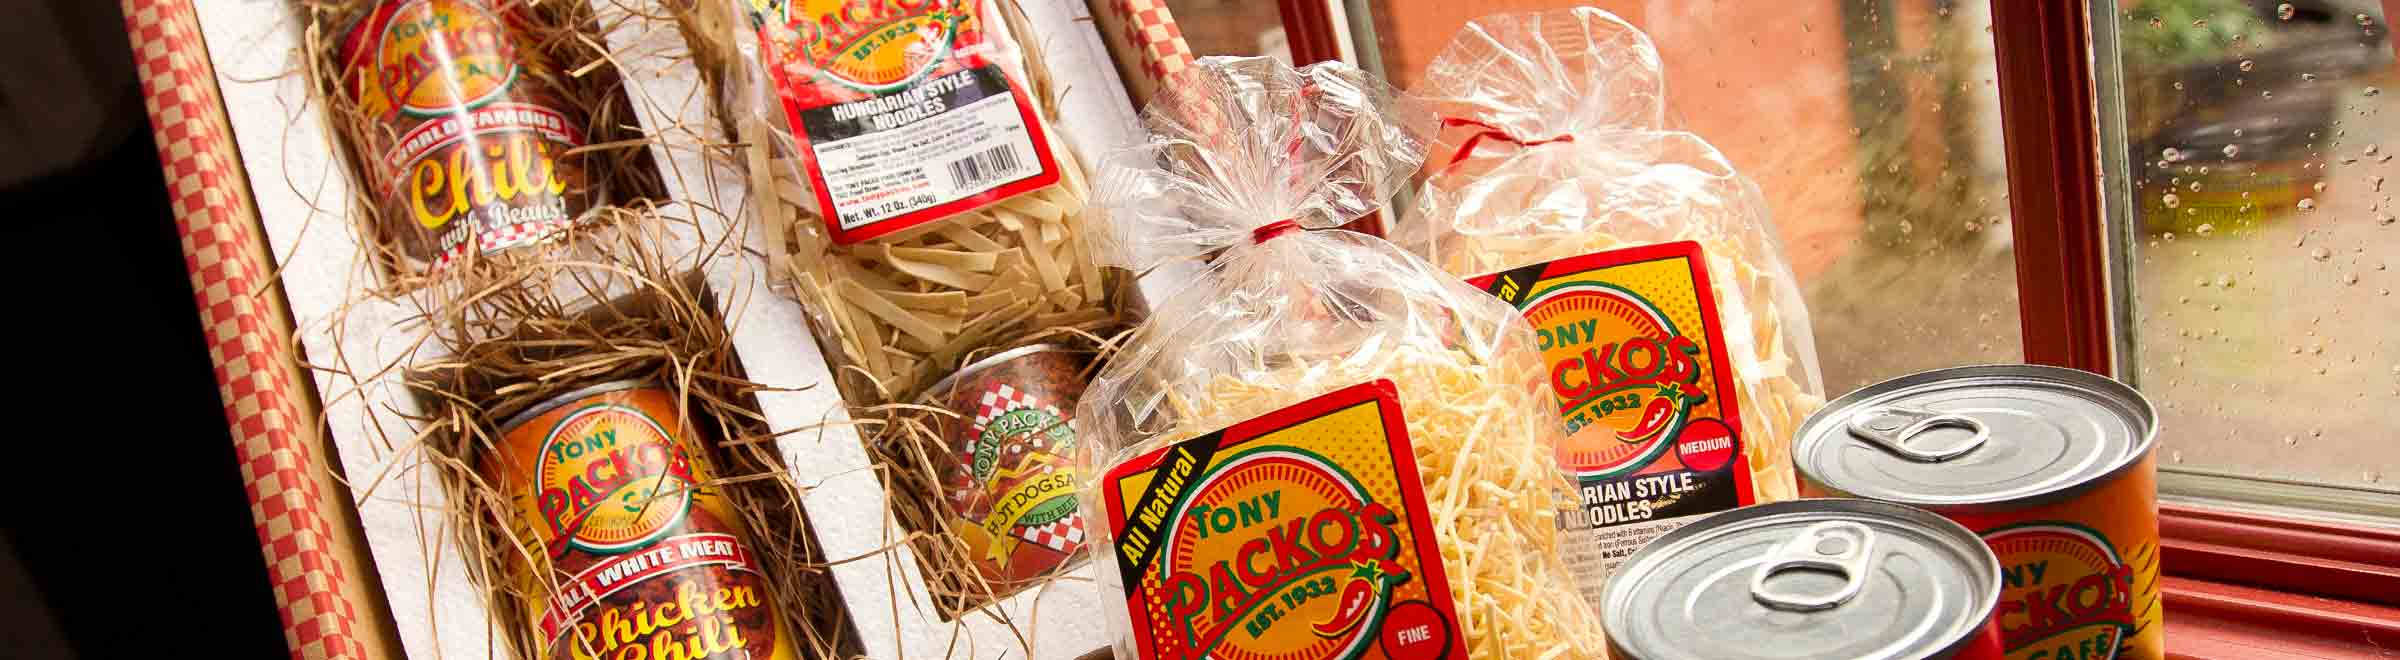 Tony Packo's Gift Pack open box with cans of hot dog chili sauce, chili, pickles & noodles